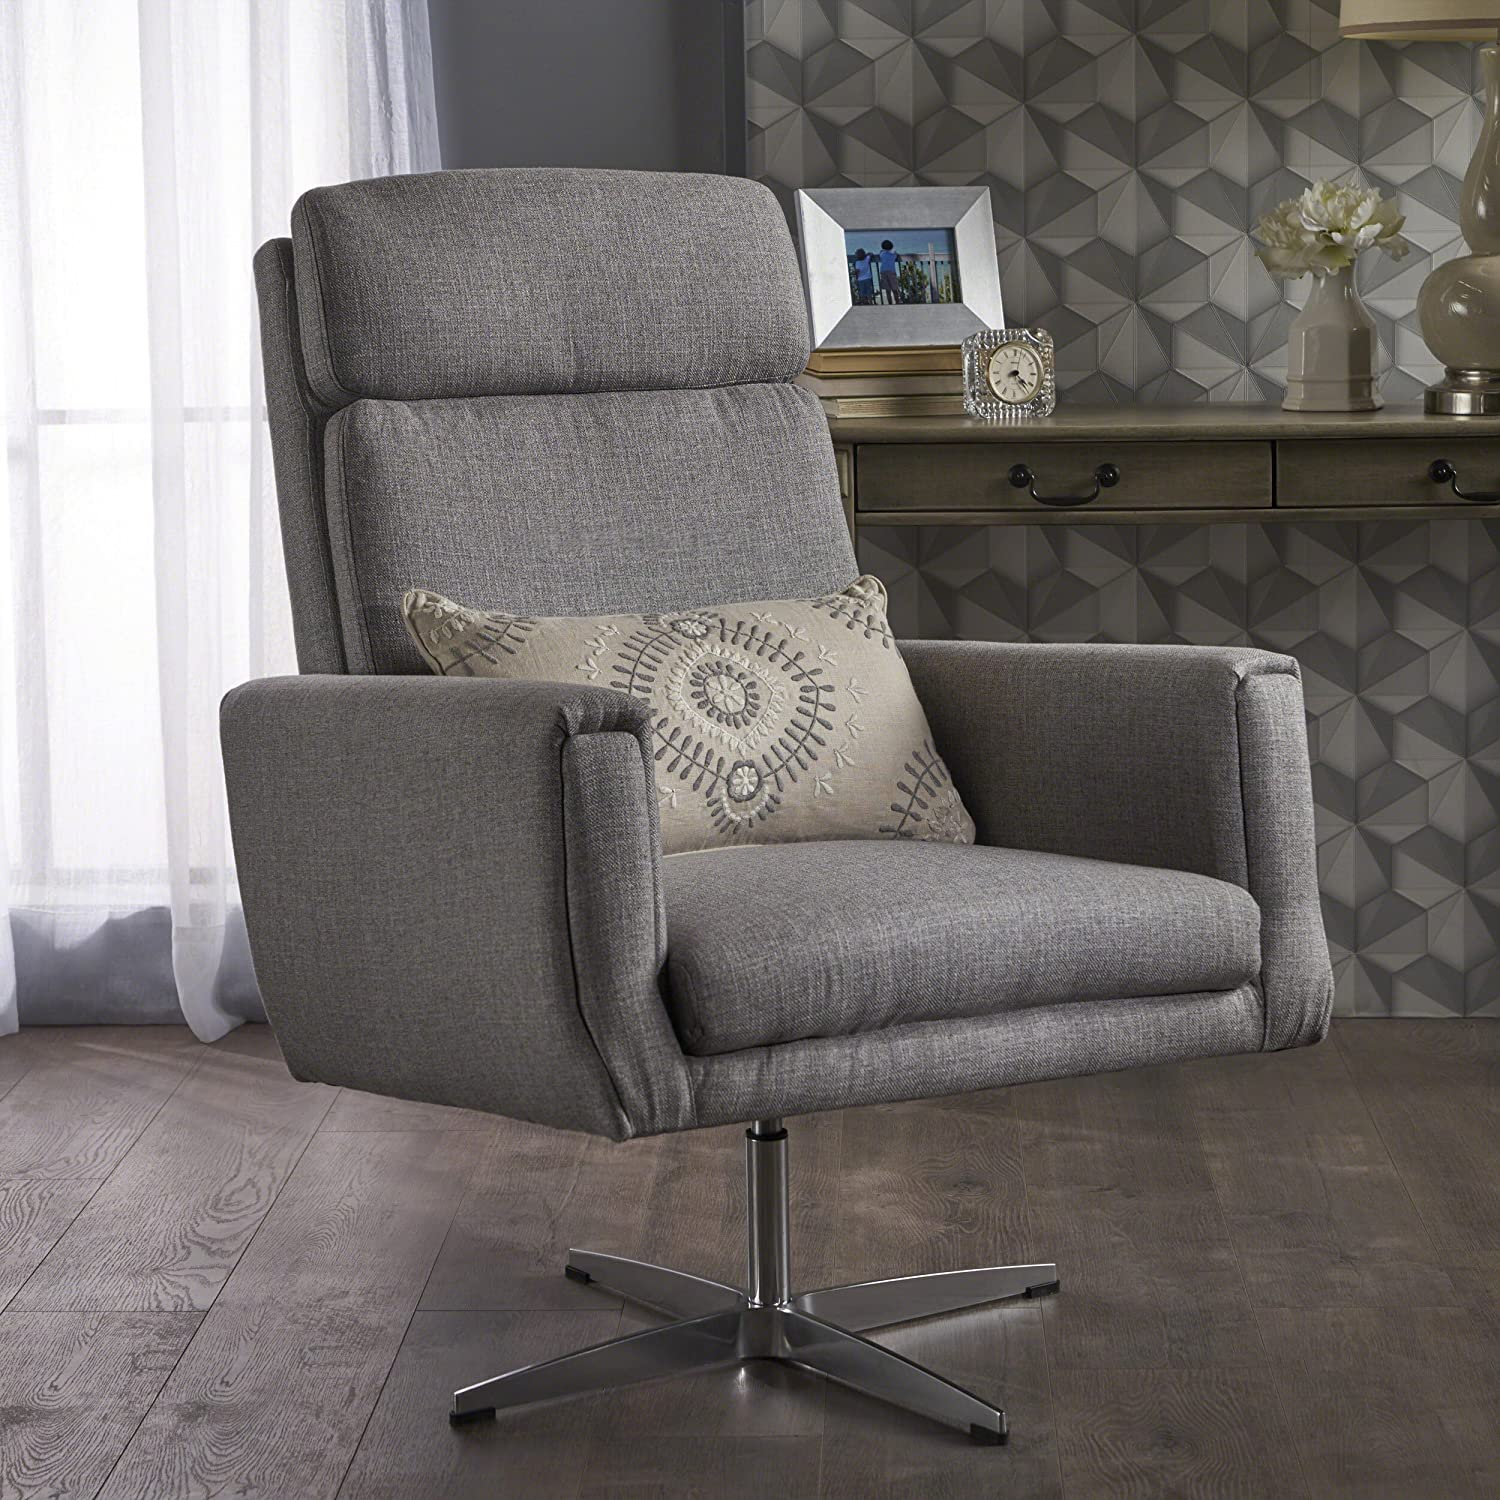 Amazon com hooper swivel arm chair perfect for home office or living room modern design fabric in grey kitchen dining